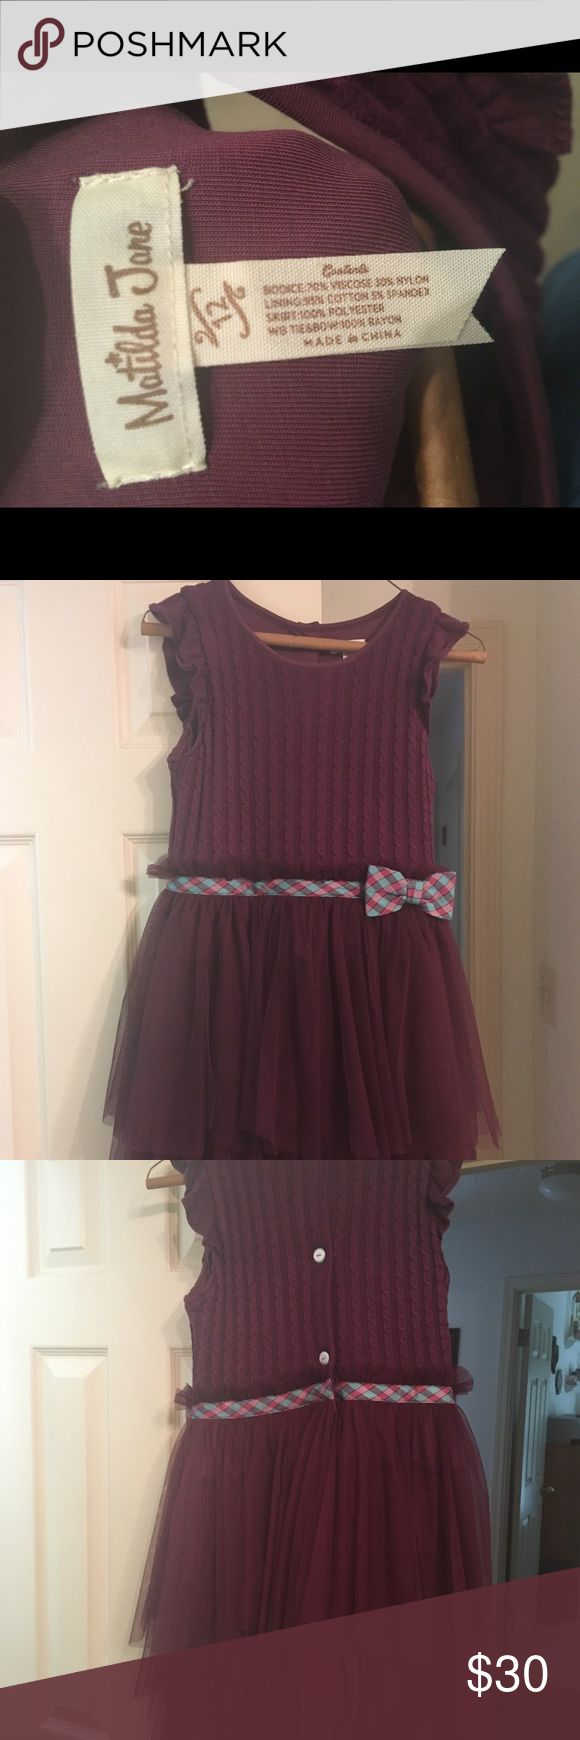 Girl's size 12 Matilda Jane deep purple dress Worn twice. Like New. Girl's size 12. Deep purple. Comes from smoke free pet free home. I have a matching 3-6 month baby git's dress with bloomers too. Let me know if you are interested in it too. Matilda Jane Dresses Formal